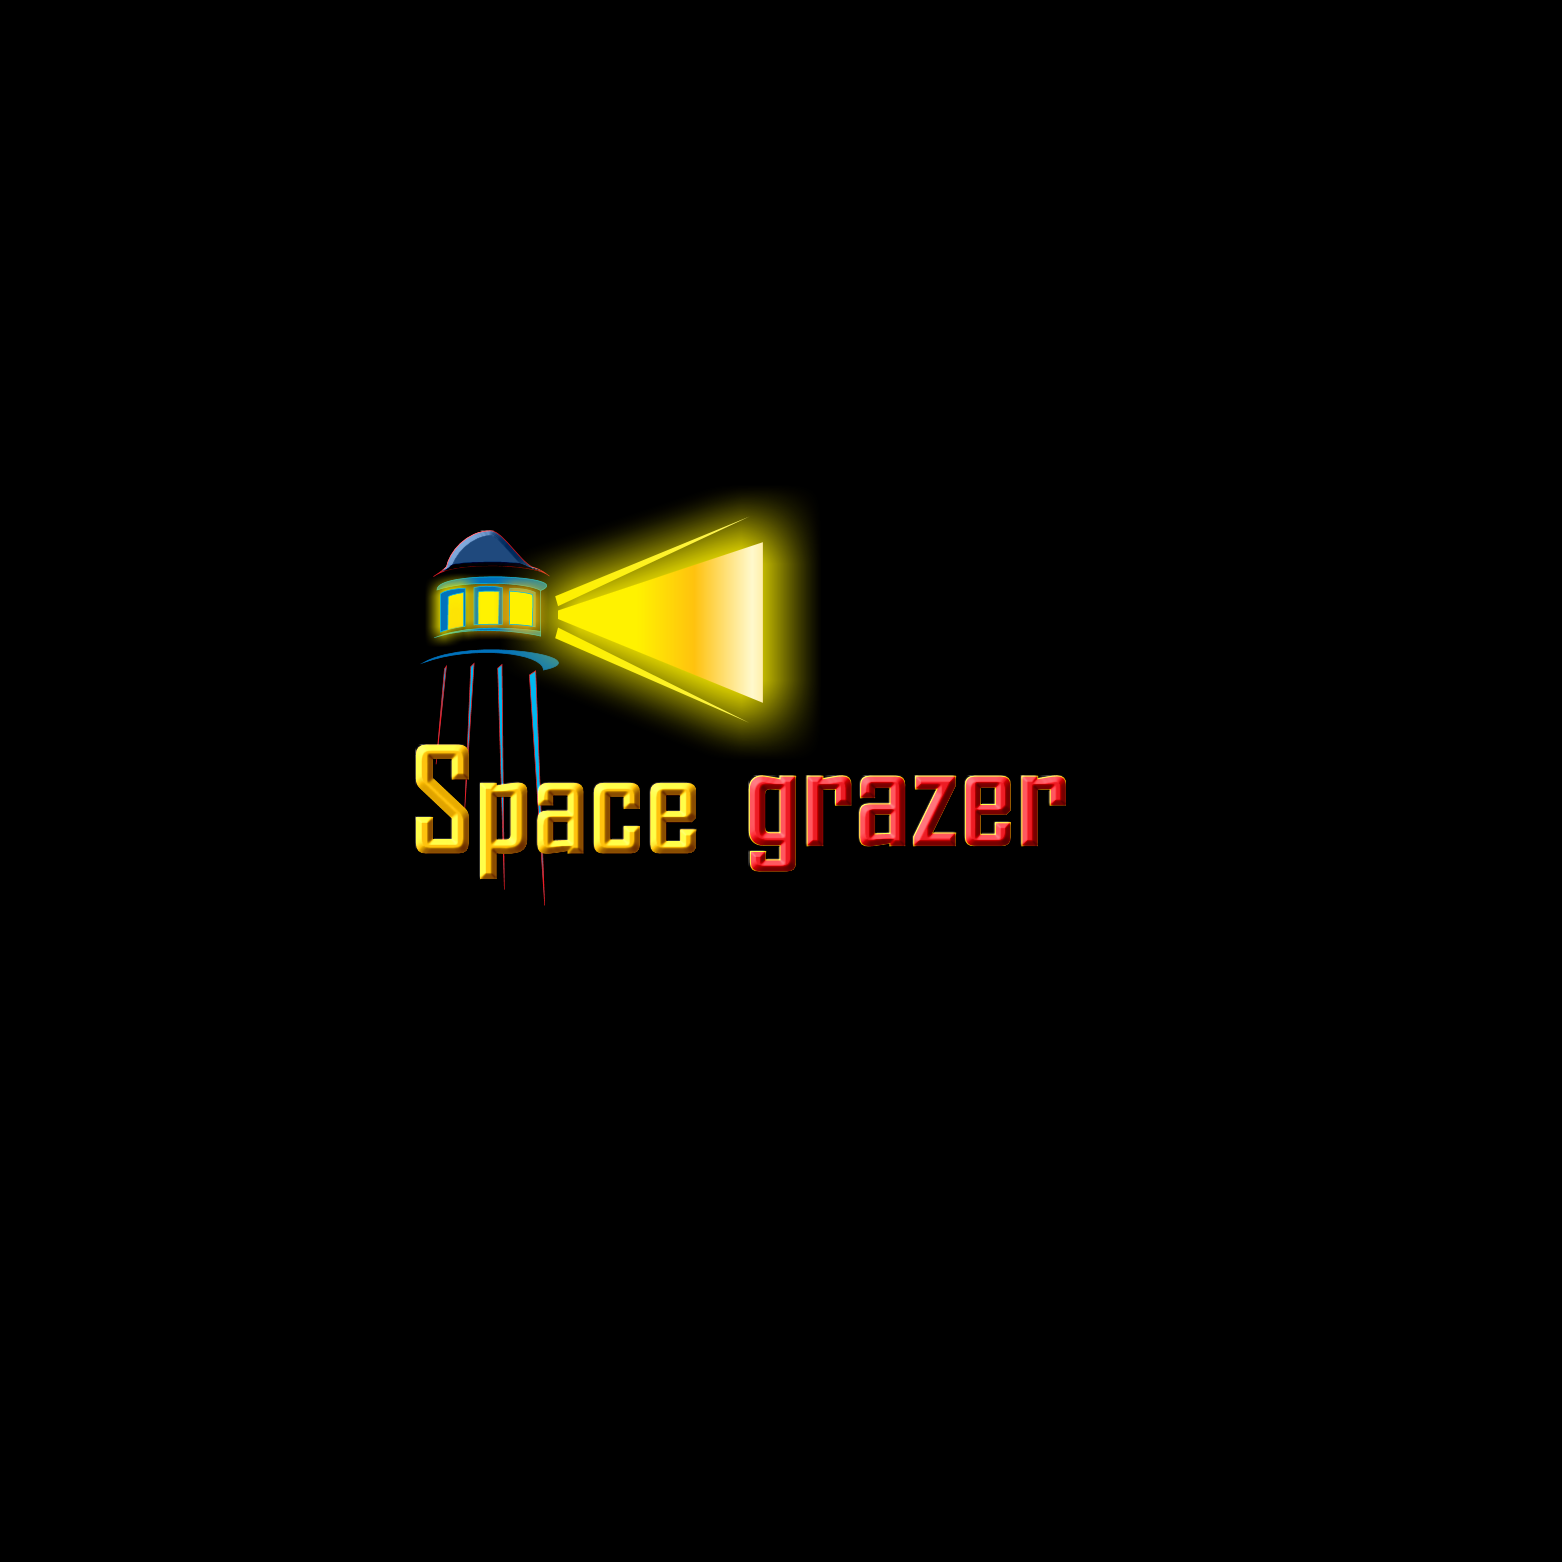 Logo Design by Steven Fitzpatrick - Entry No. 37 in the Logo Design Contest Fun Logo Design for Spacegrazer.